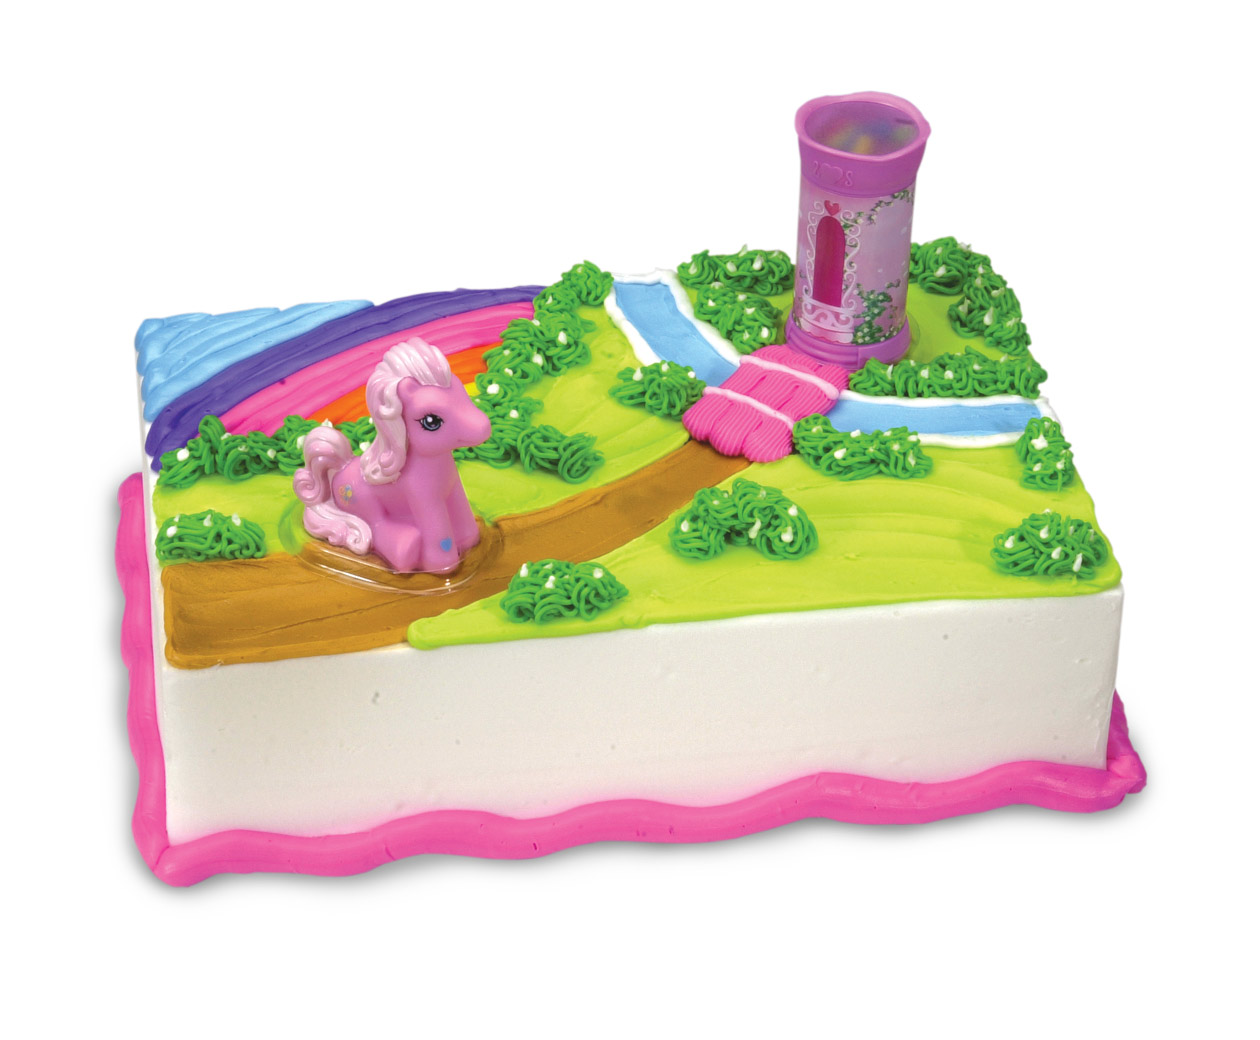 Kroger Design Your Own Cake : Order a Kid s Birthday Cake at Cold Stone Creamery